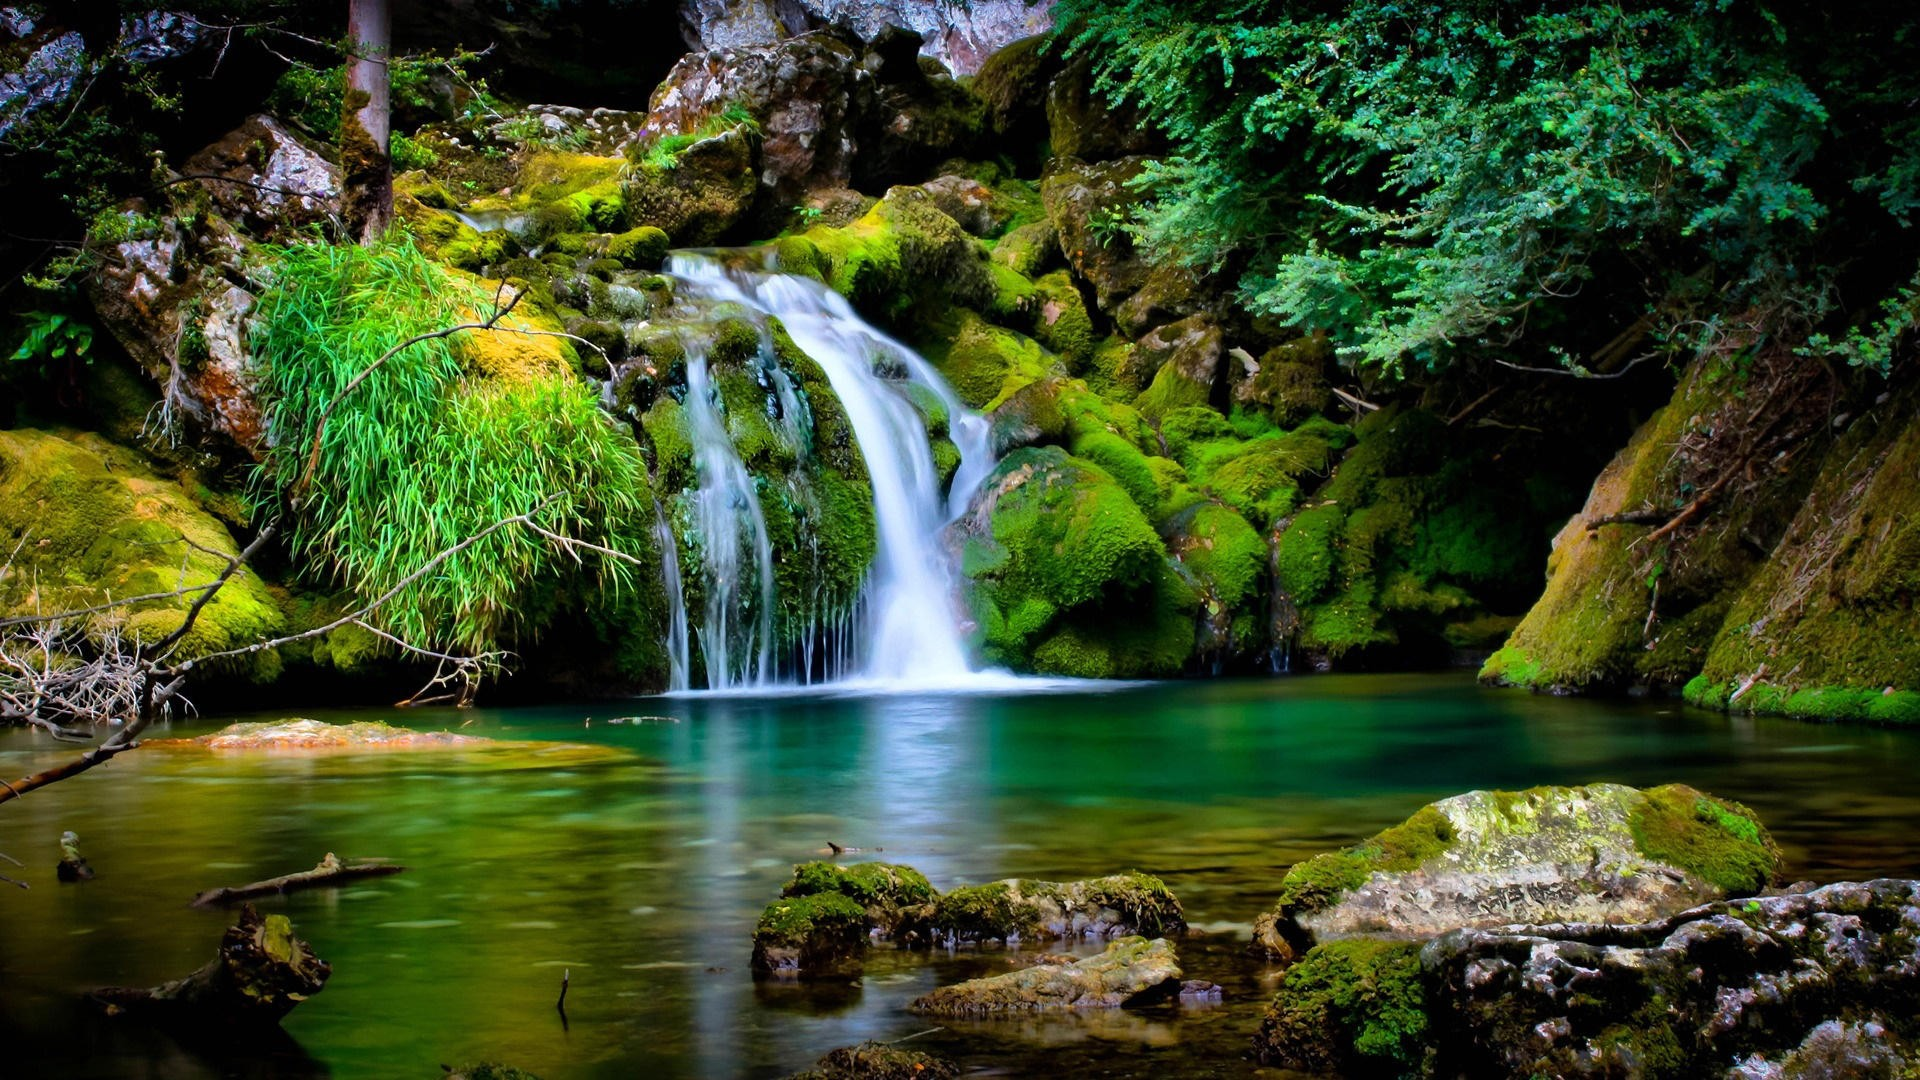 Download free hd wallpapers of waterfall